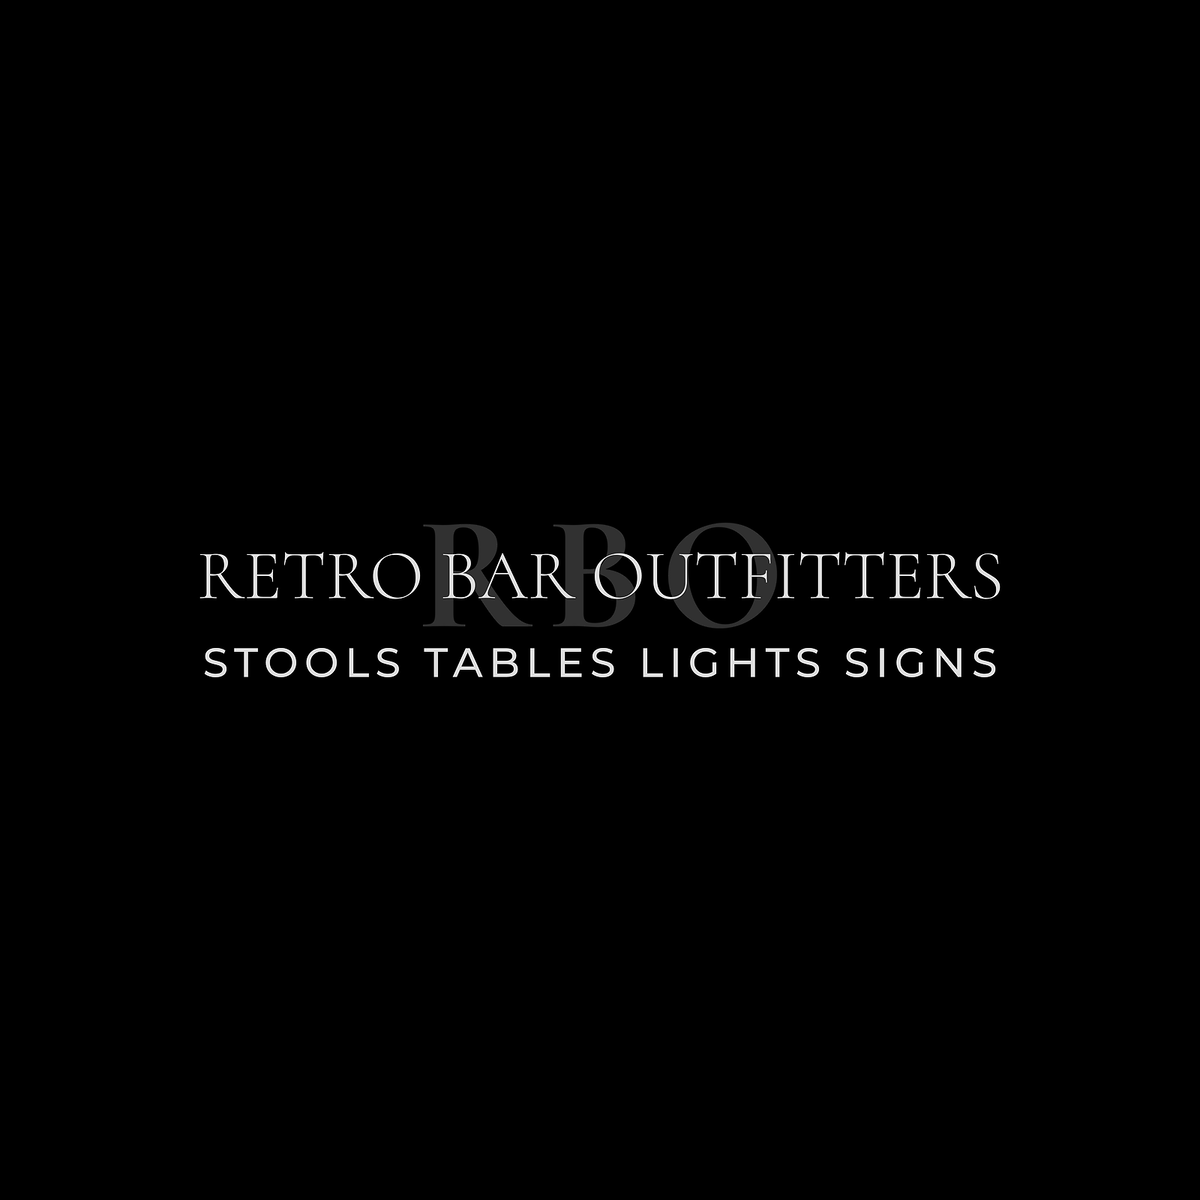 RETRO-BAR-OUTFITTERS